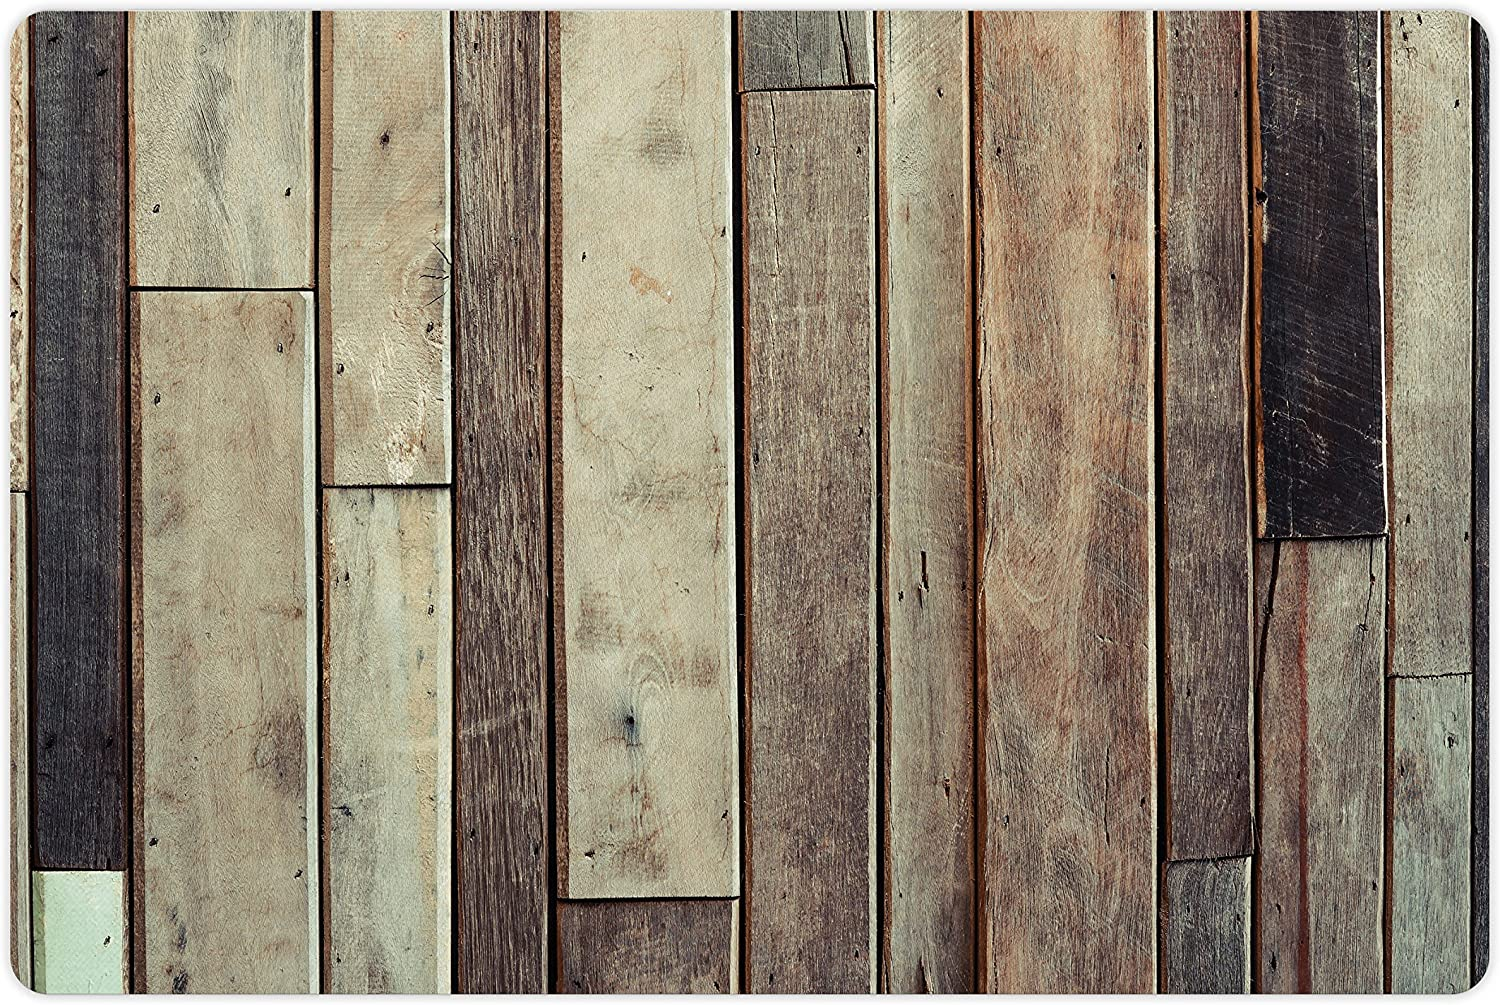 Ambesonne Pet Mat for Food and Water, Rectangle Non-Slip Rubber Mat for Dogs and Cats, Antique Planks Flooring Wall Picture American Style Western Rustic Panel Graphic Print, Brown